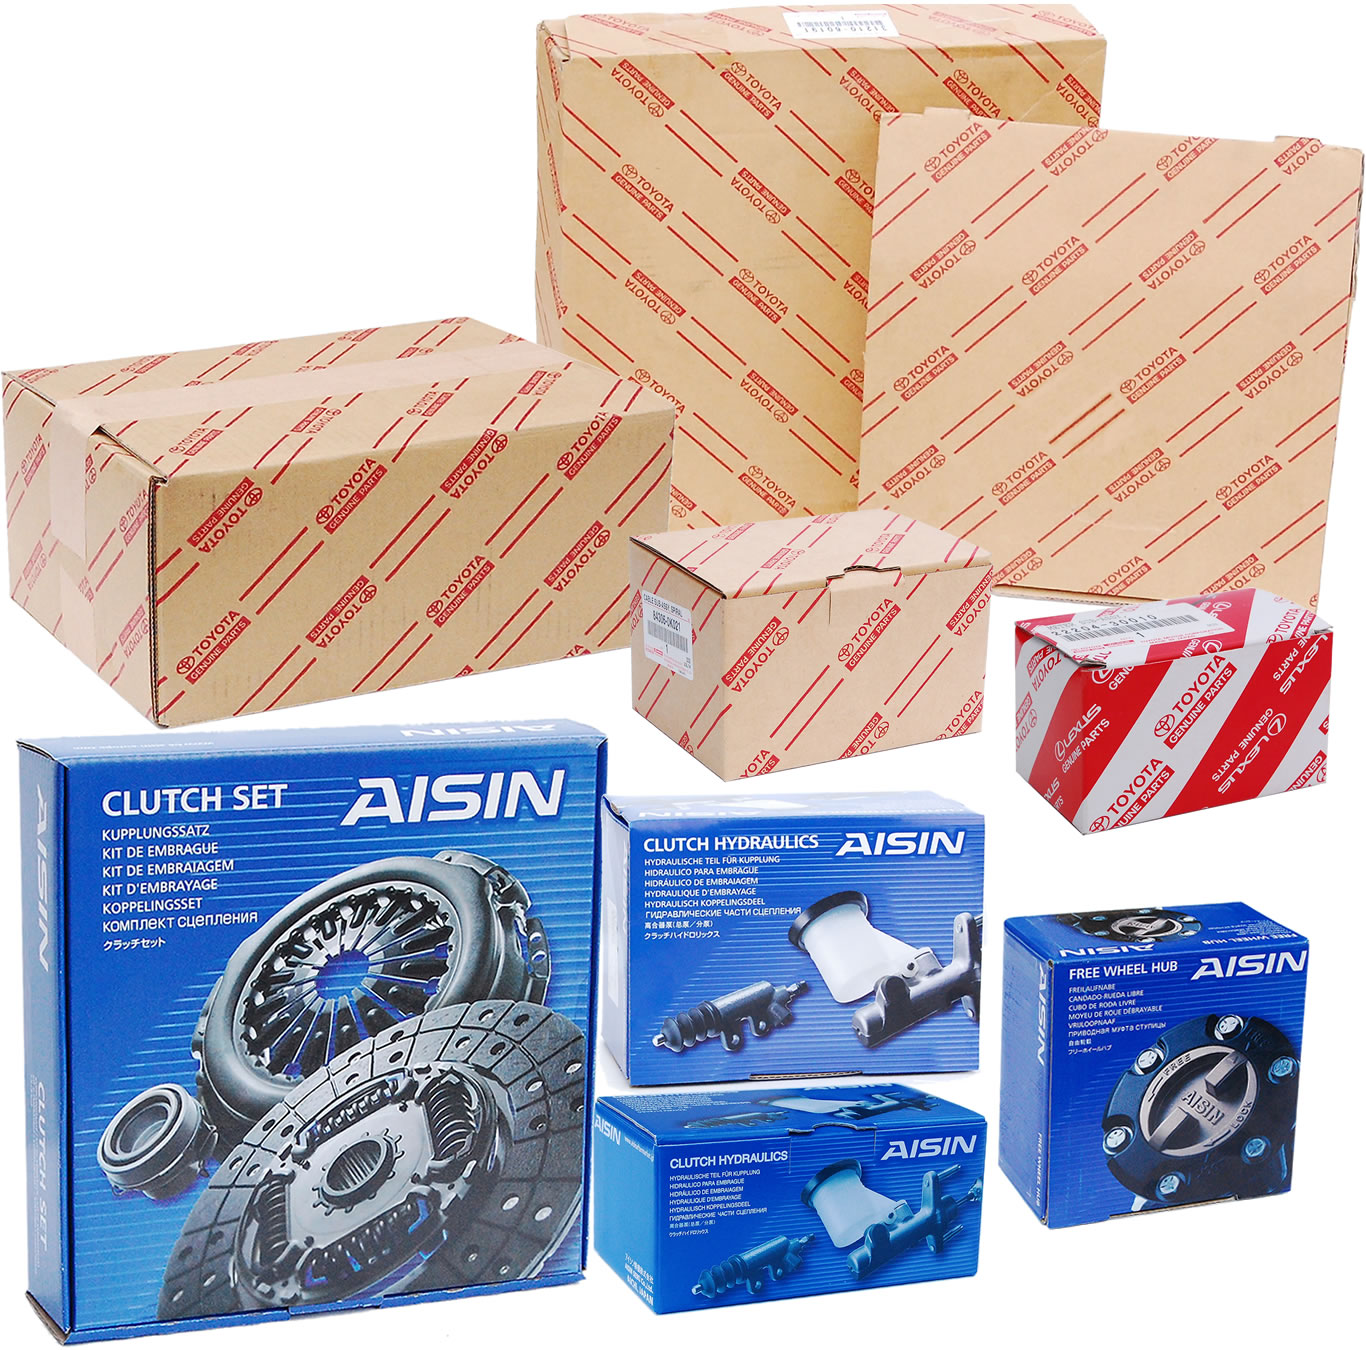 Toyota and Aisin Packaging Boxes